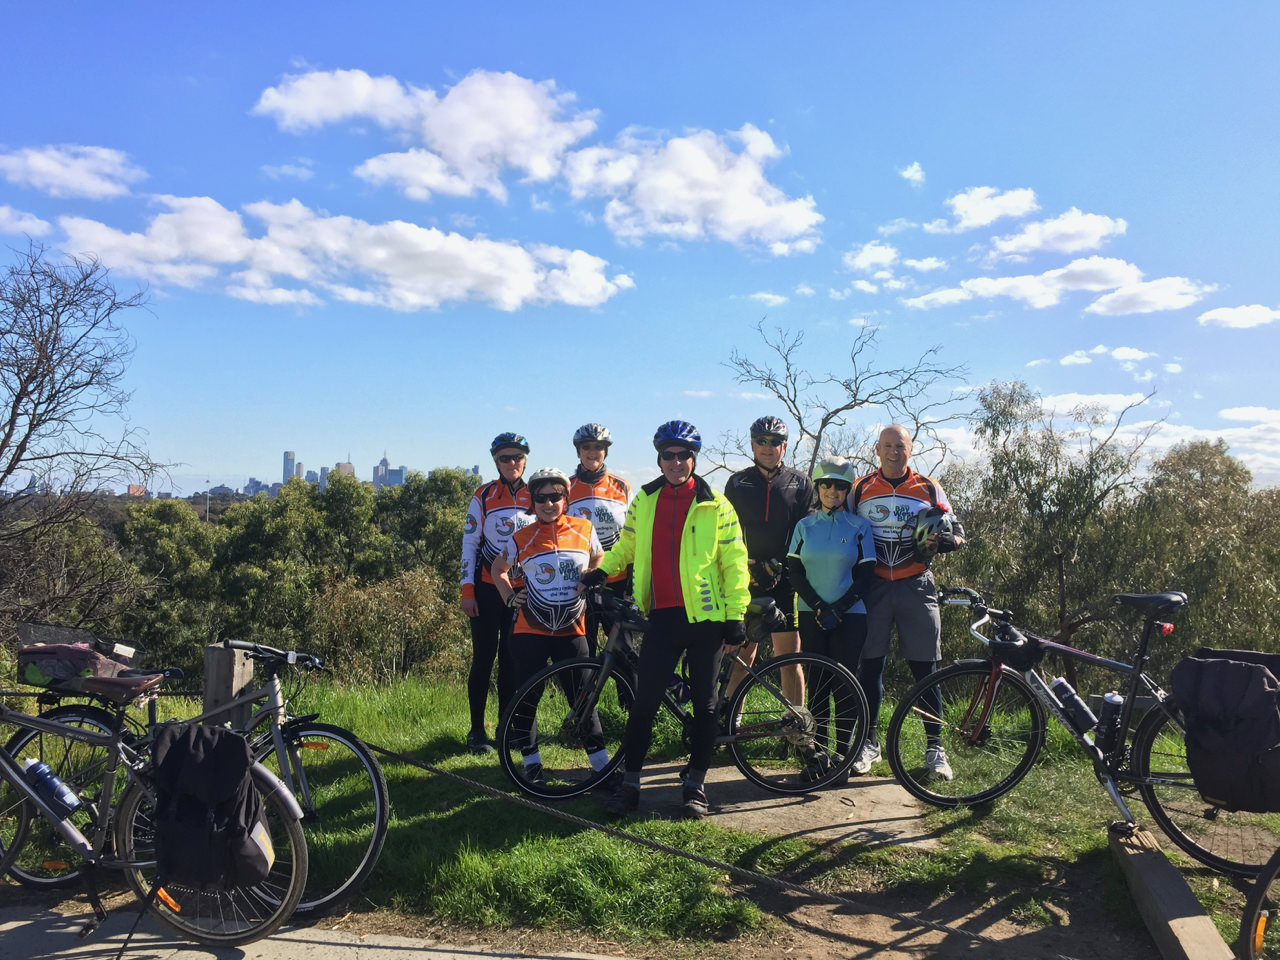 Enjoying city views at Wurundjeri Spur lookout on the Main Yarra trail.